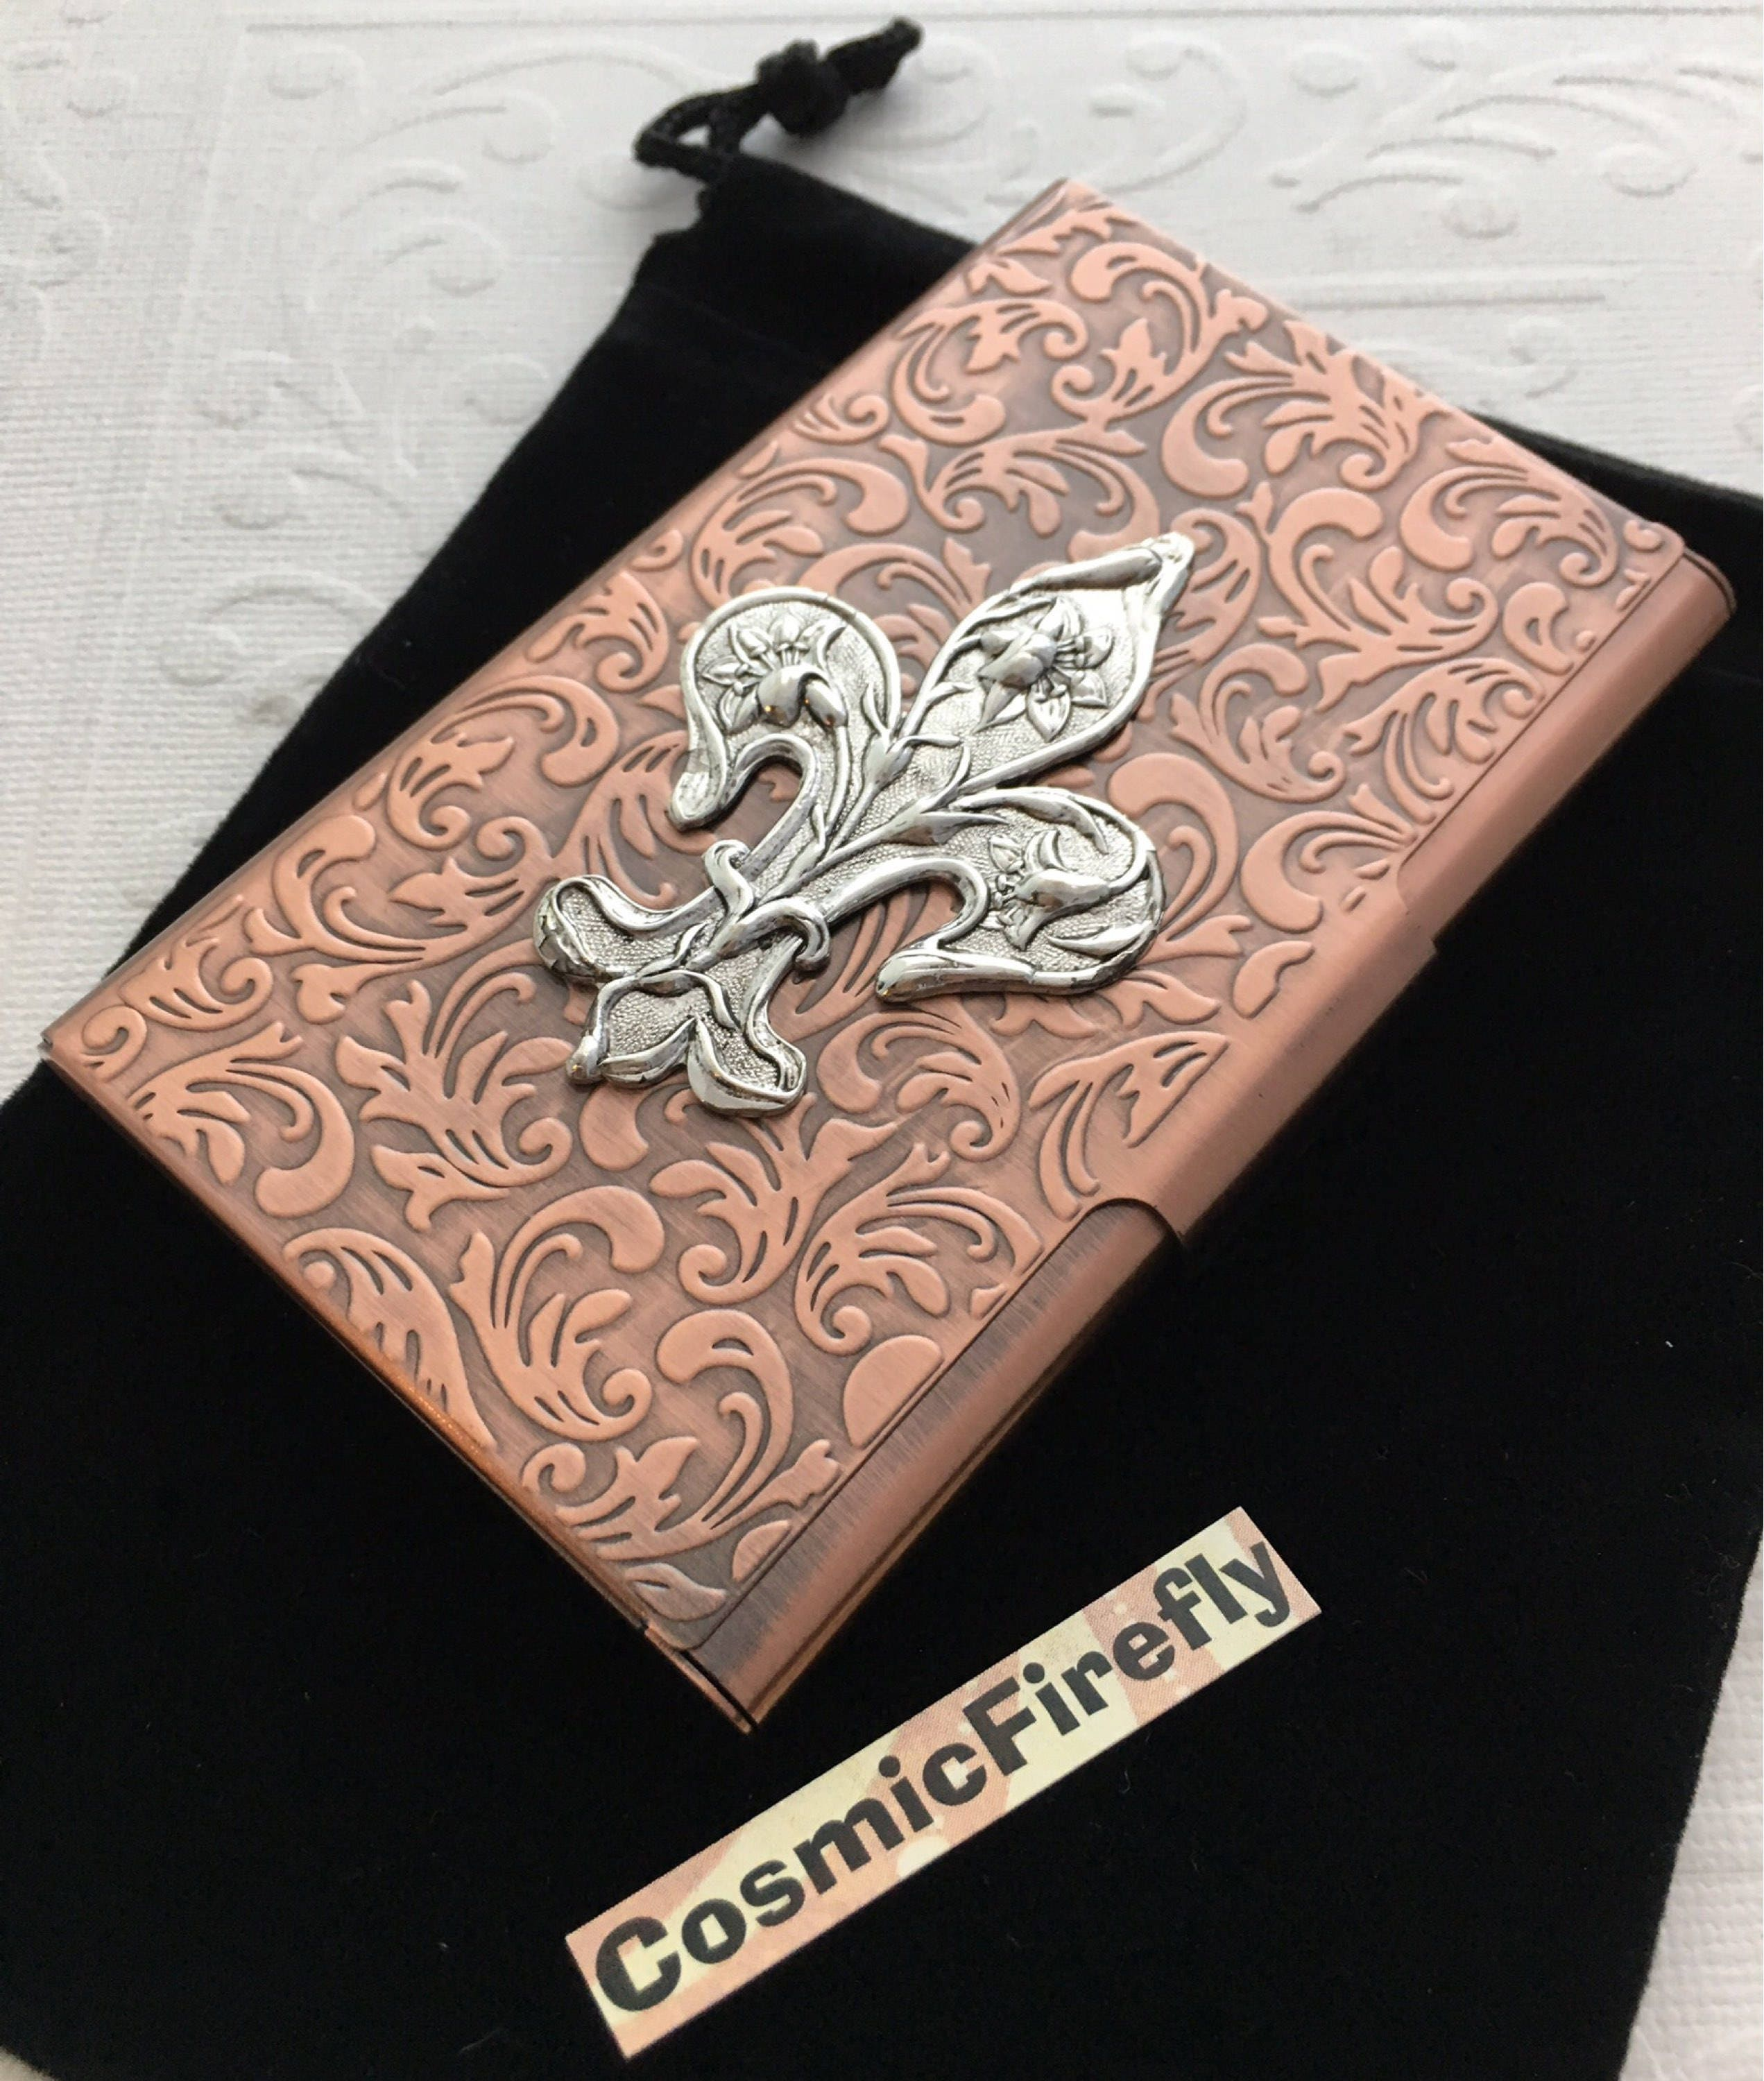 Copper business card case silver fleur de lis steampunk card case copper business card case silver fleur de lis steampunk card case card holder victorian fleur de magicingreecefo Gallery